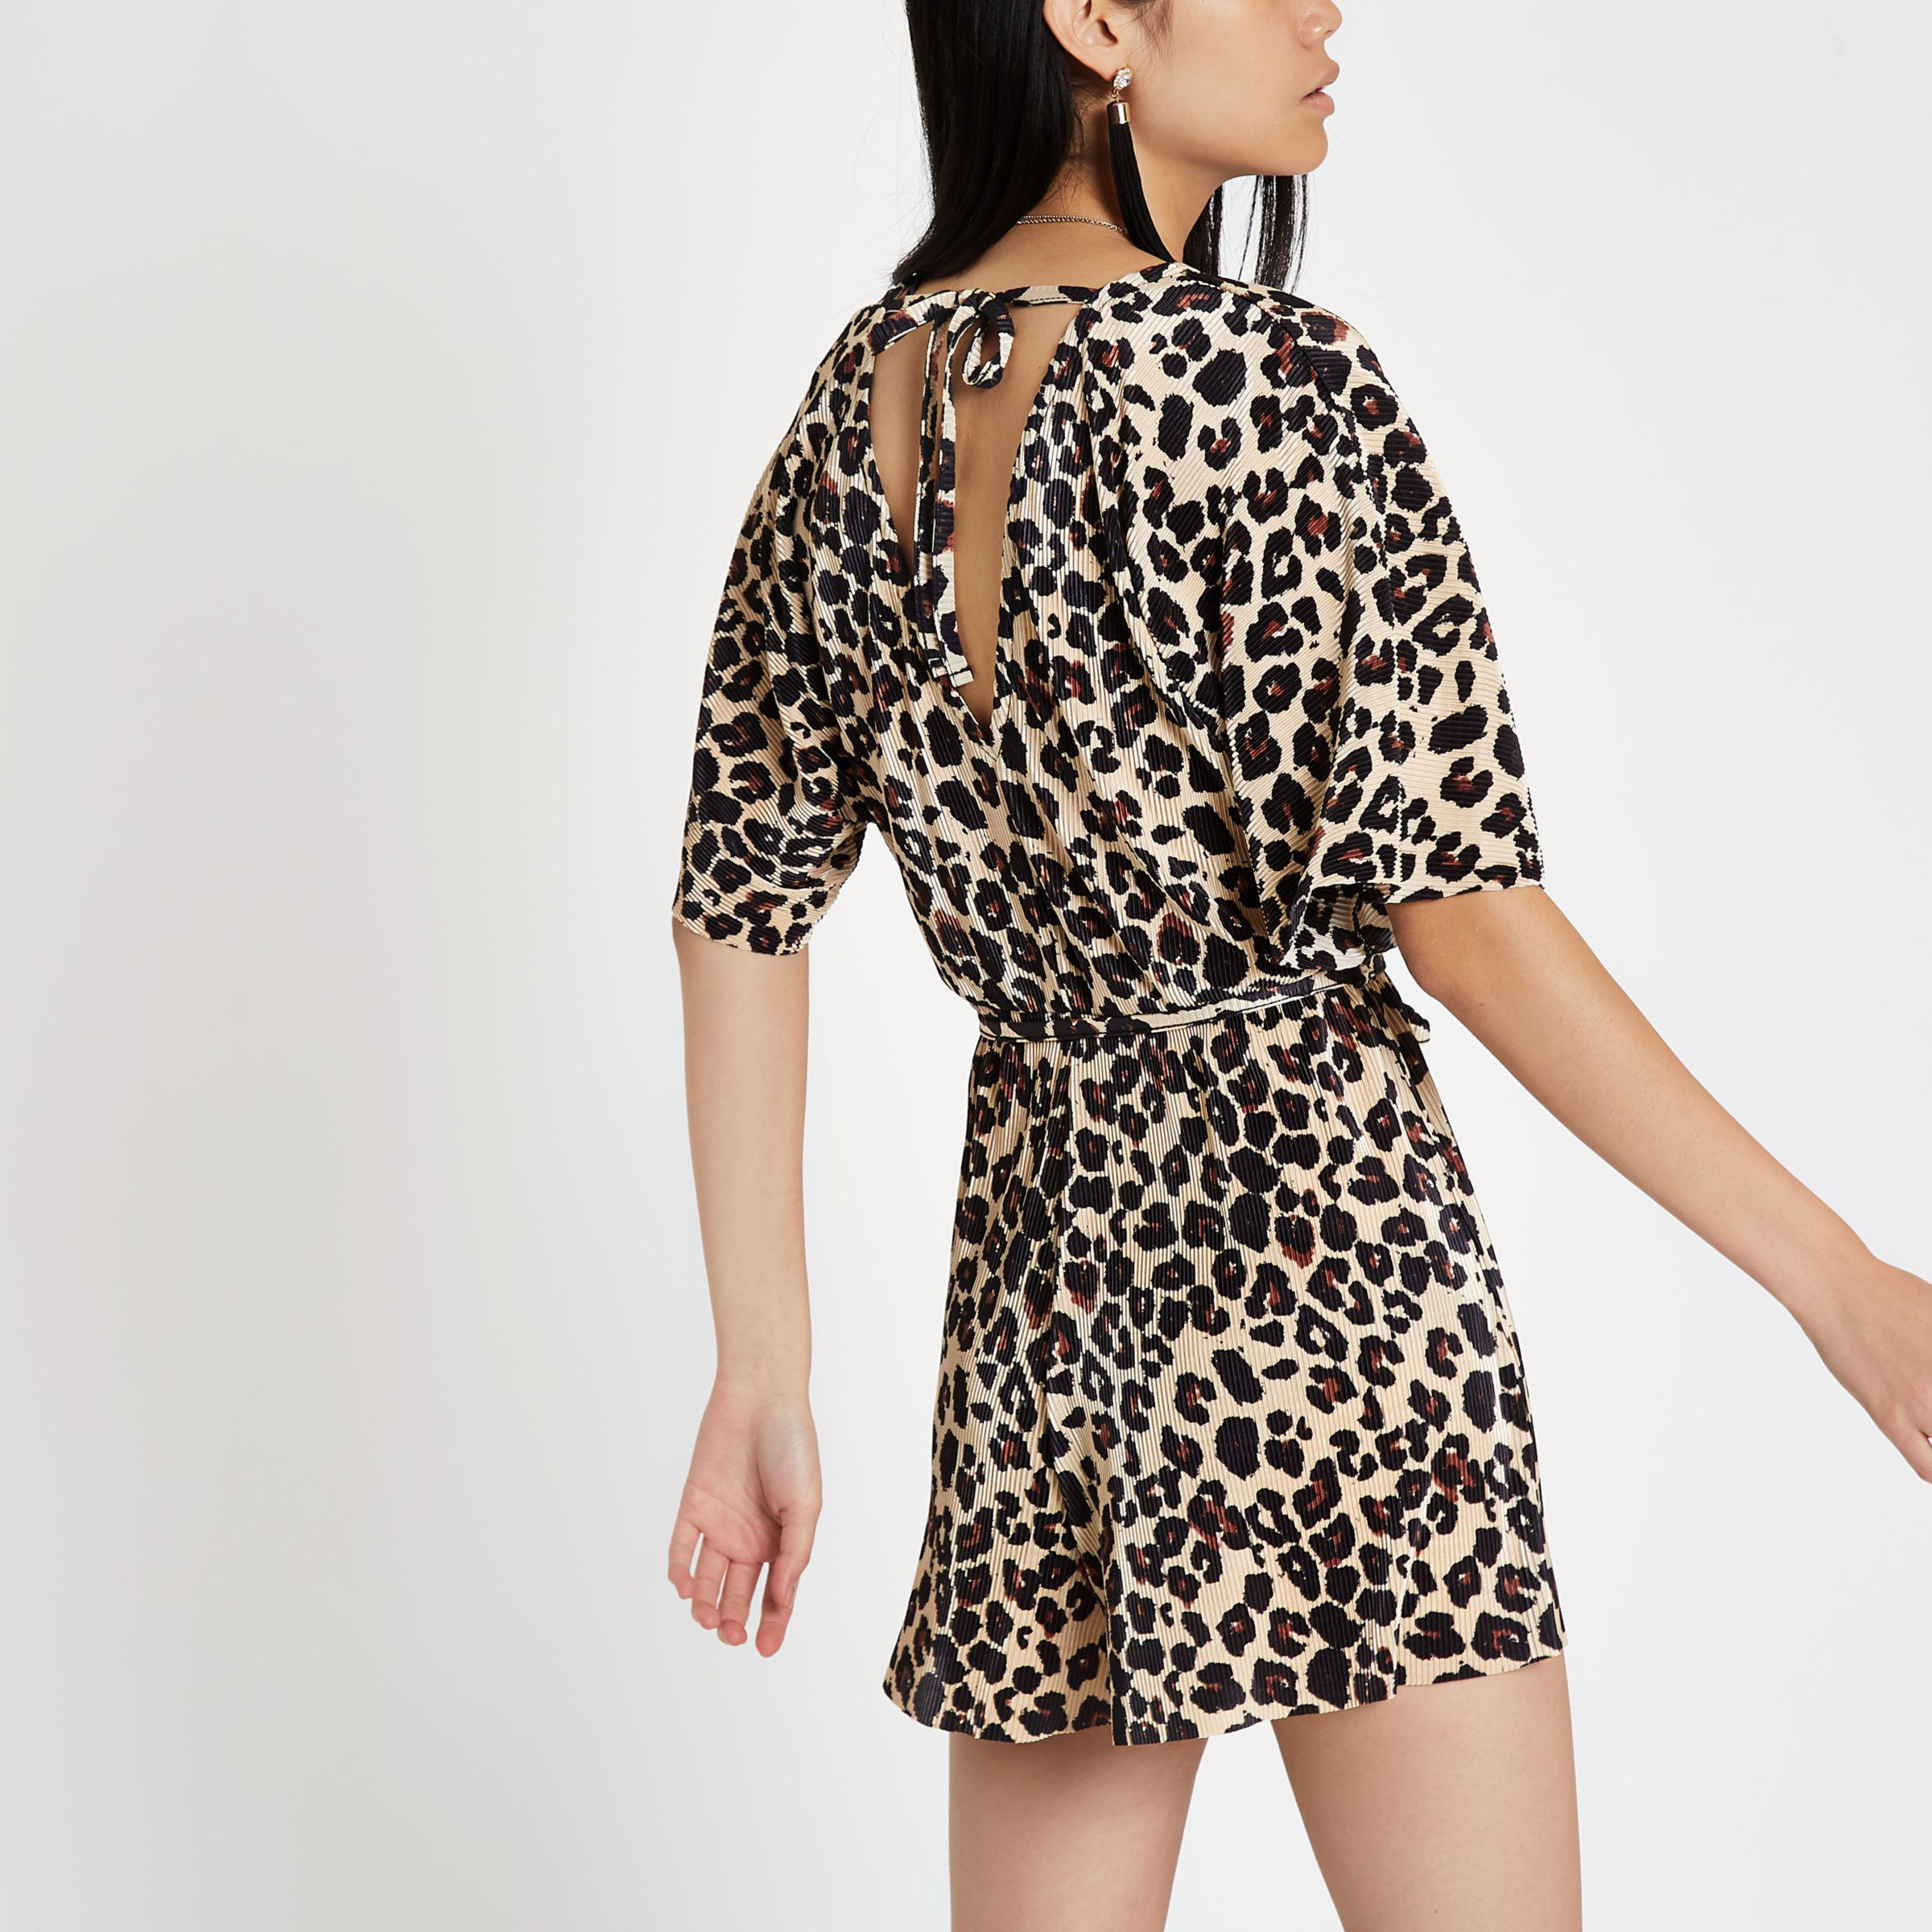 Lyst - River Island Brown Leopard Print Plisse Belted Playsuit in Brown 5893f92b1